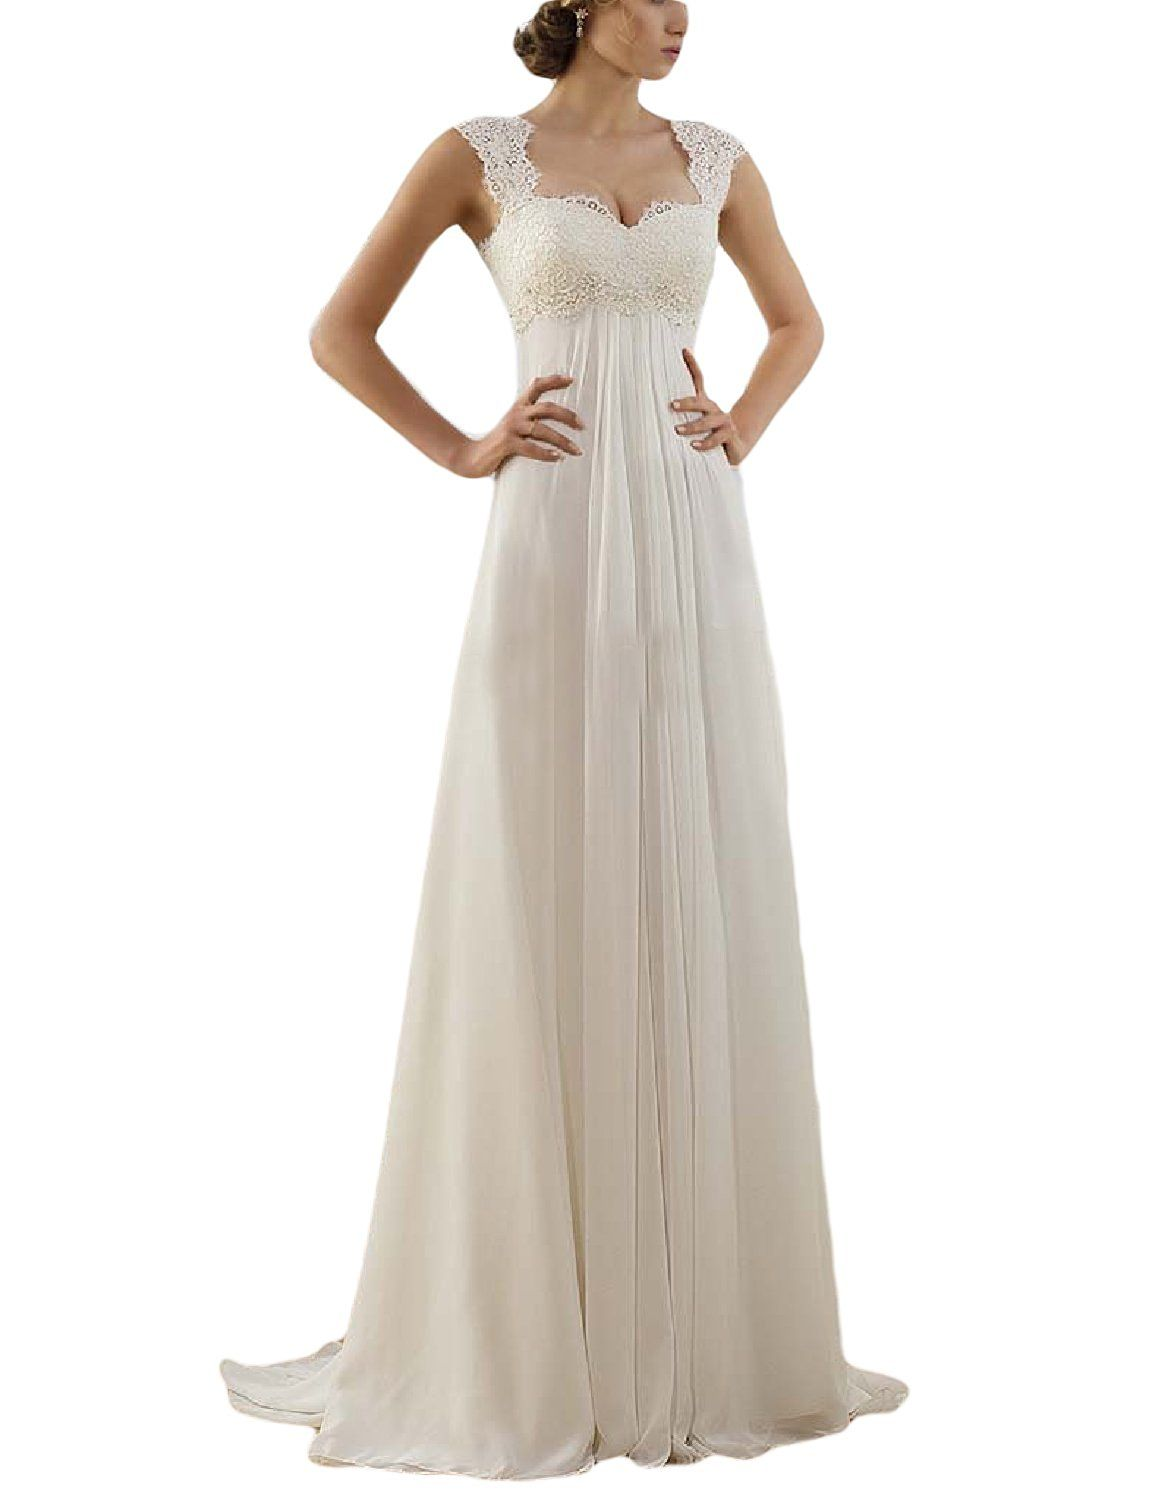 Cheap Vestido De Noiva Buy Quality Directly From China Bridal Gown Suppliers New Arrival 2017 Robe Mariage White Ivory Appliques Lace